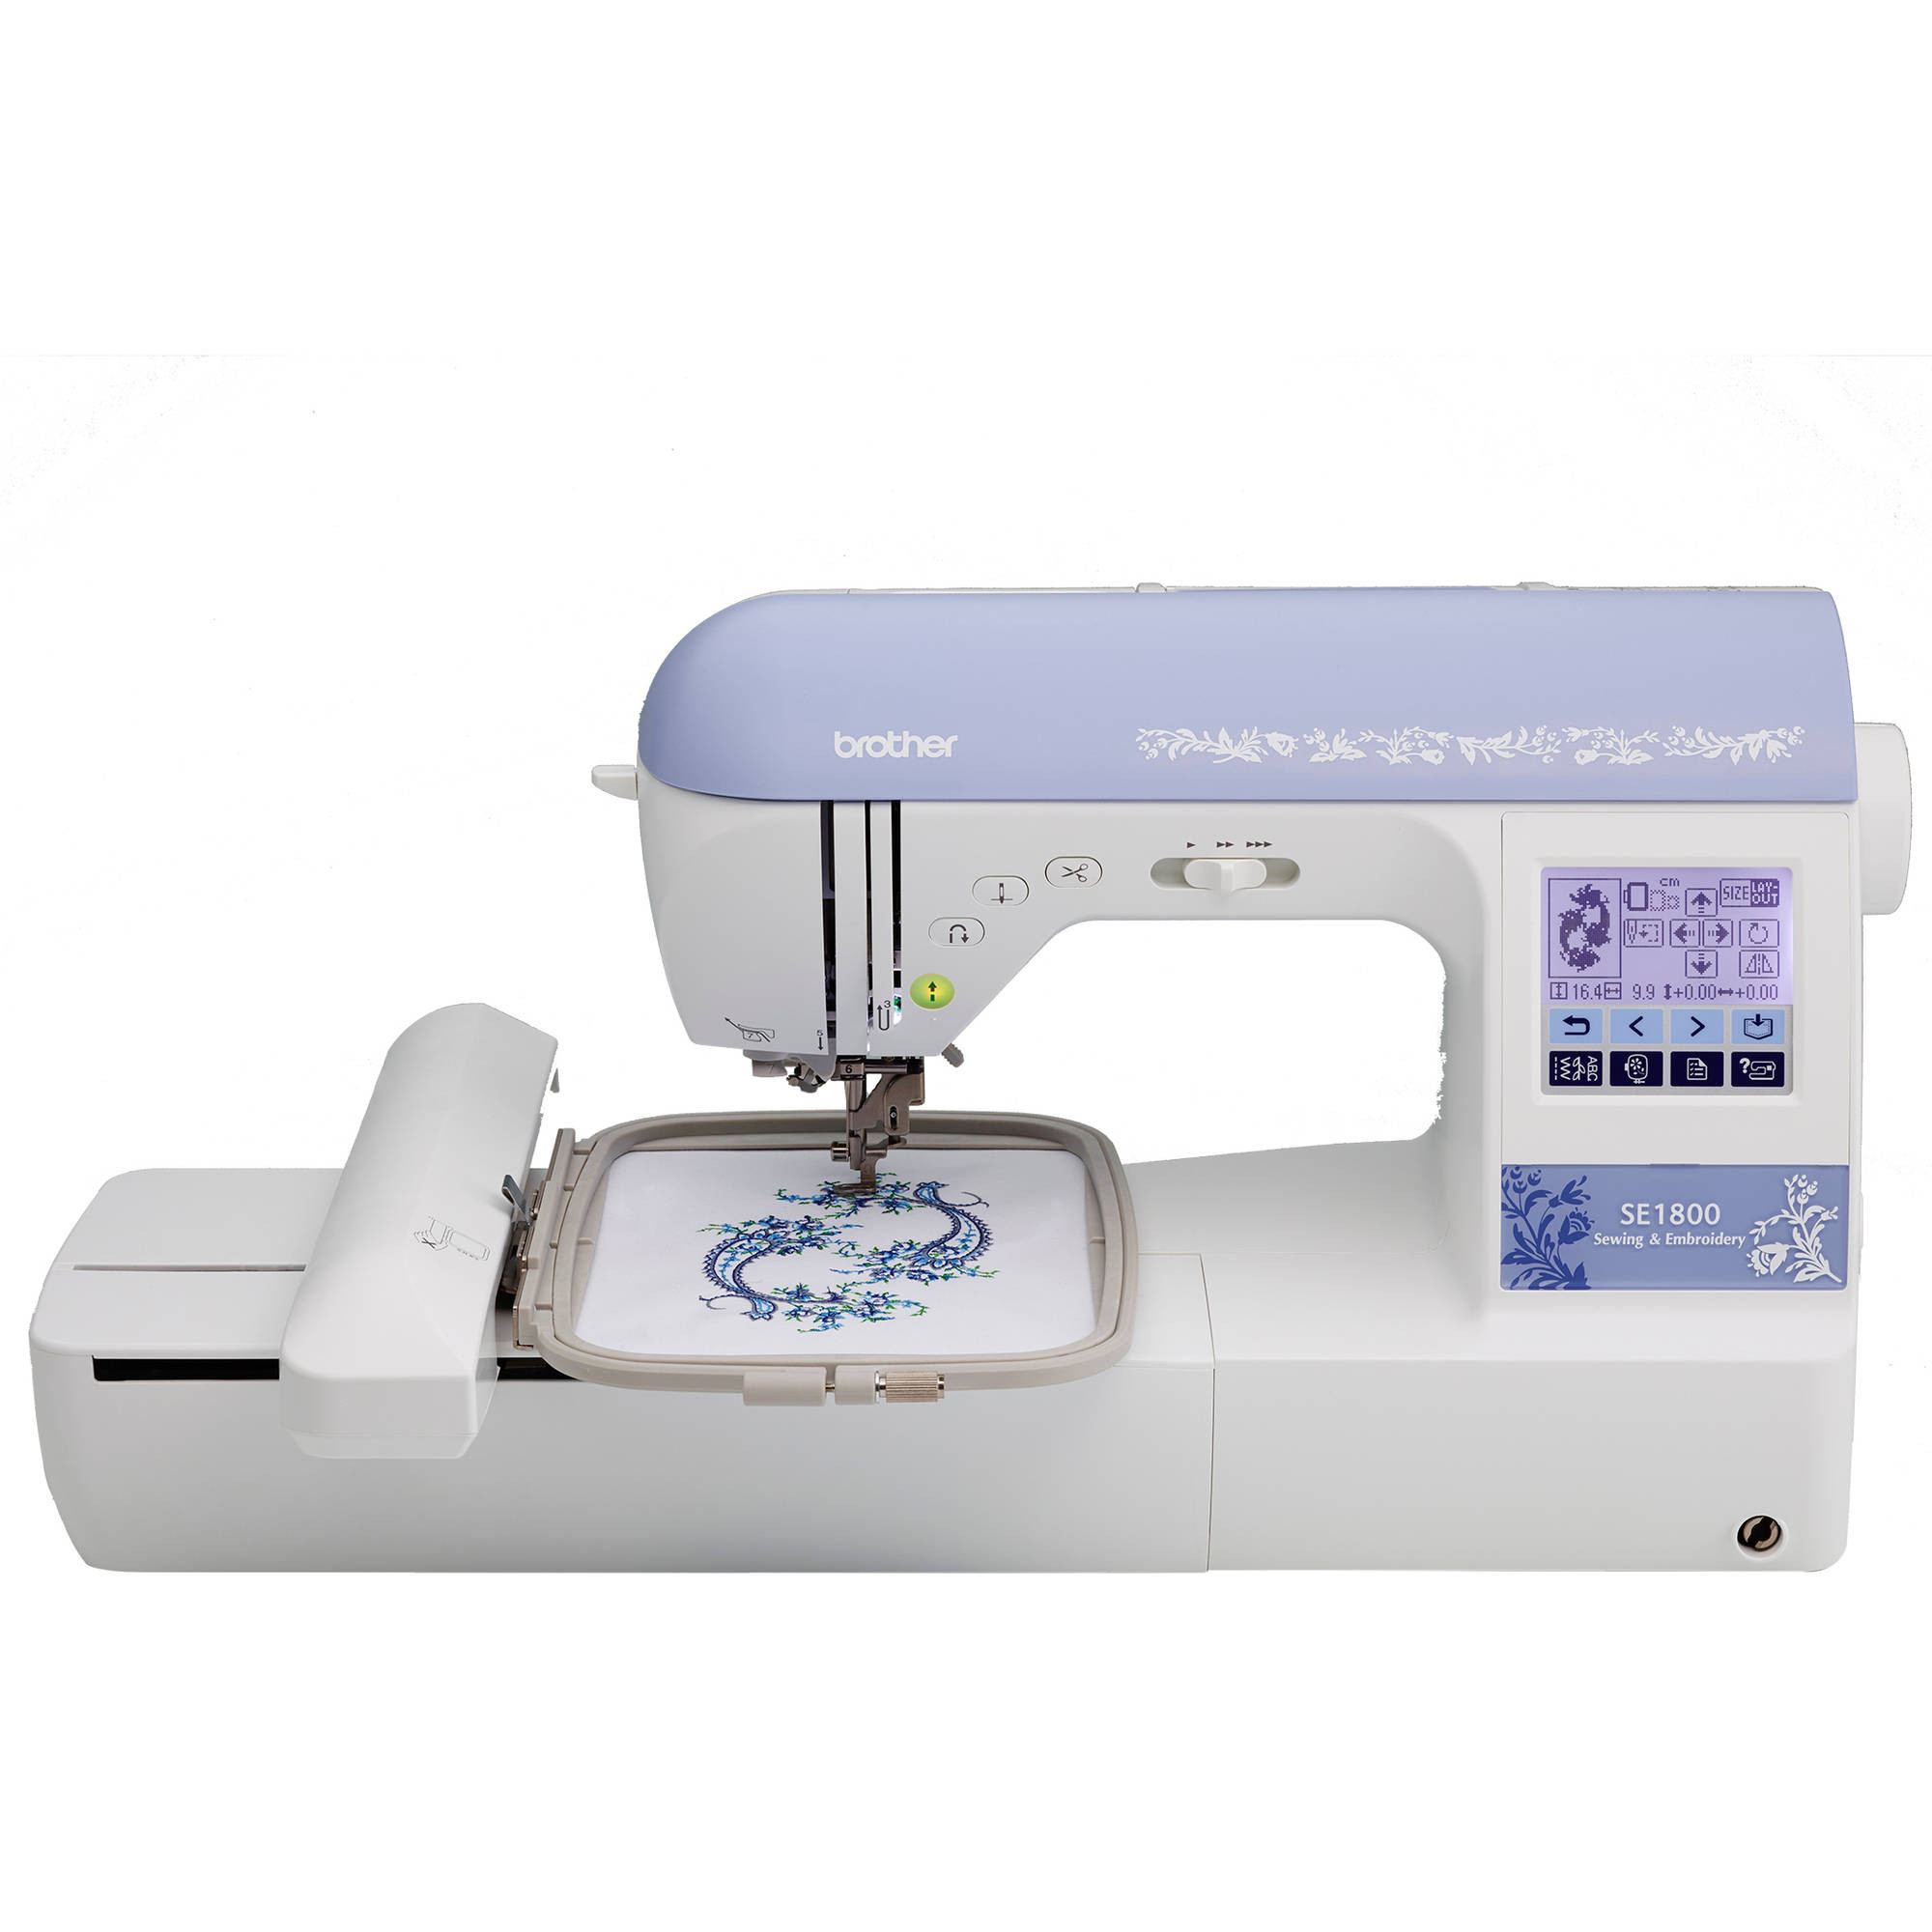 Embroidery Sewing Machine Inspirational Brother Se400 Bination Puterized Sewing and 4×4 Of Wonderful 40 Images Embroidery Sewing Machine